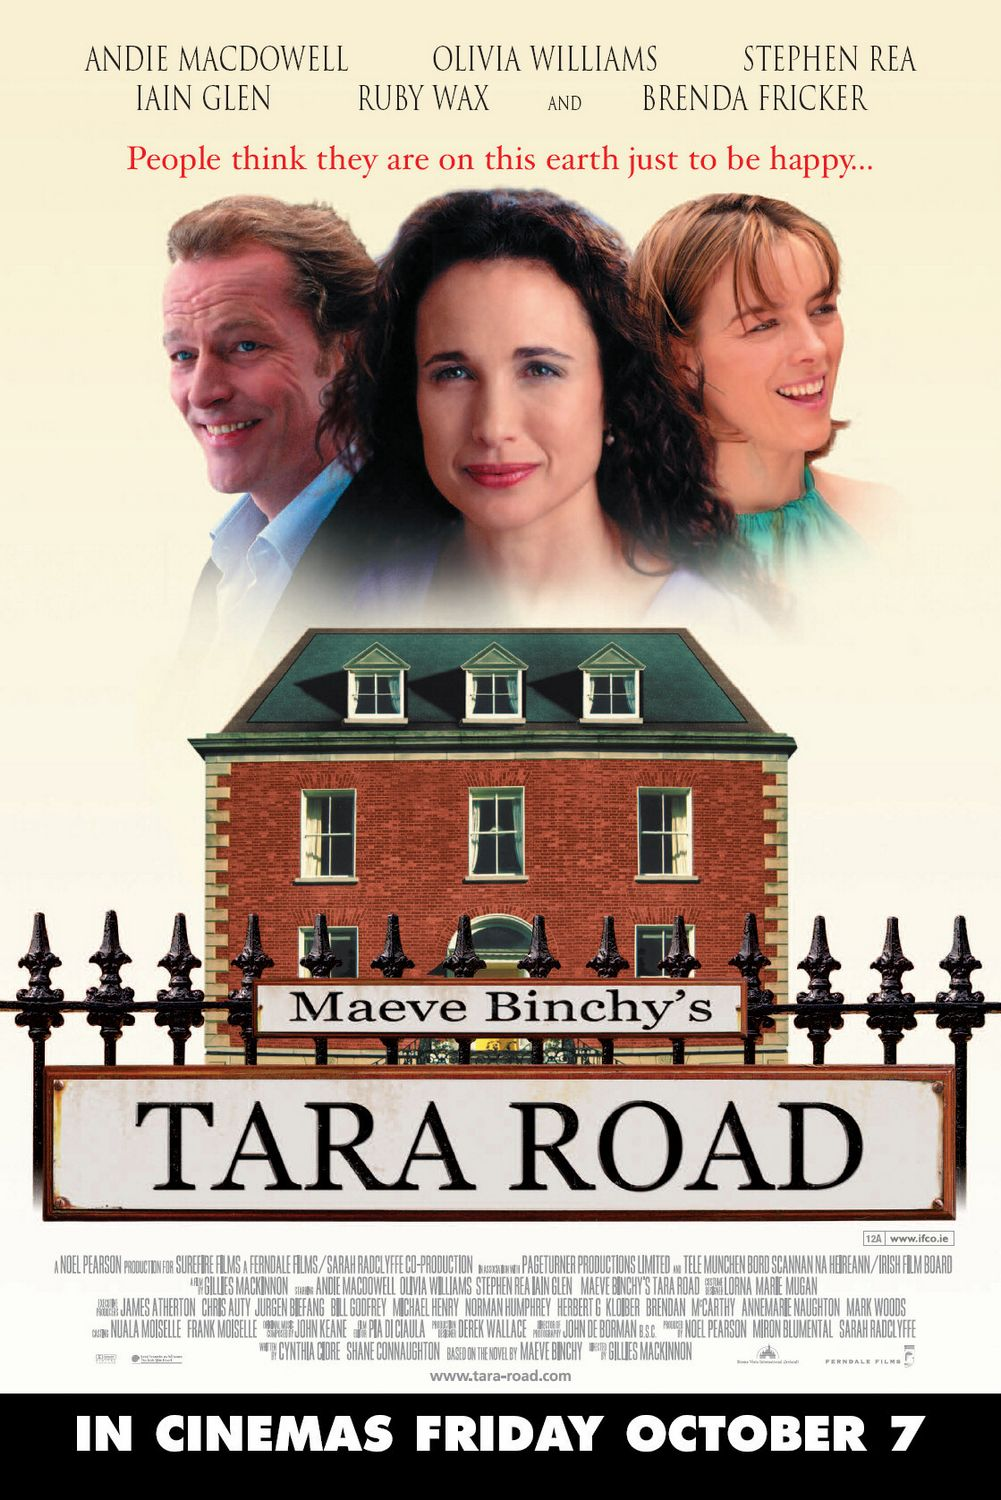 Tara Road - love comedy film poster